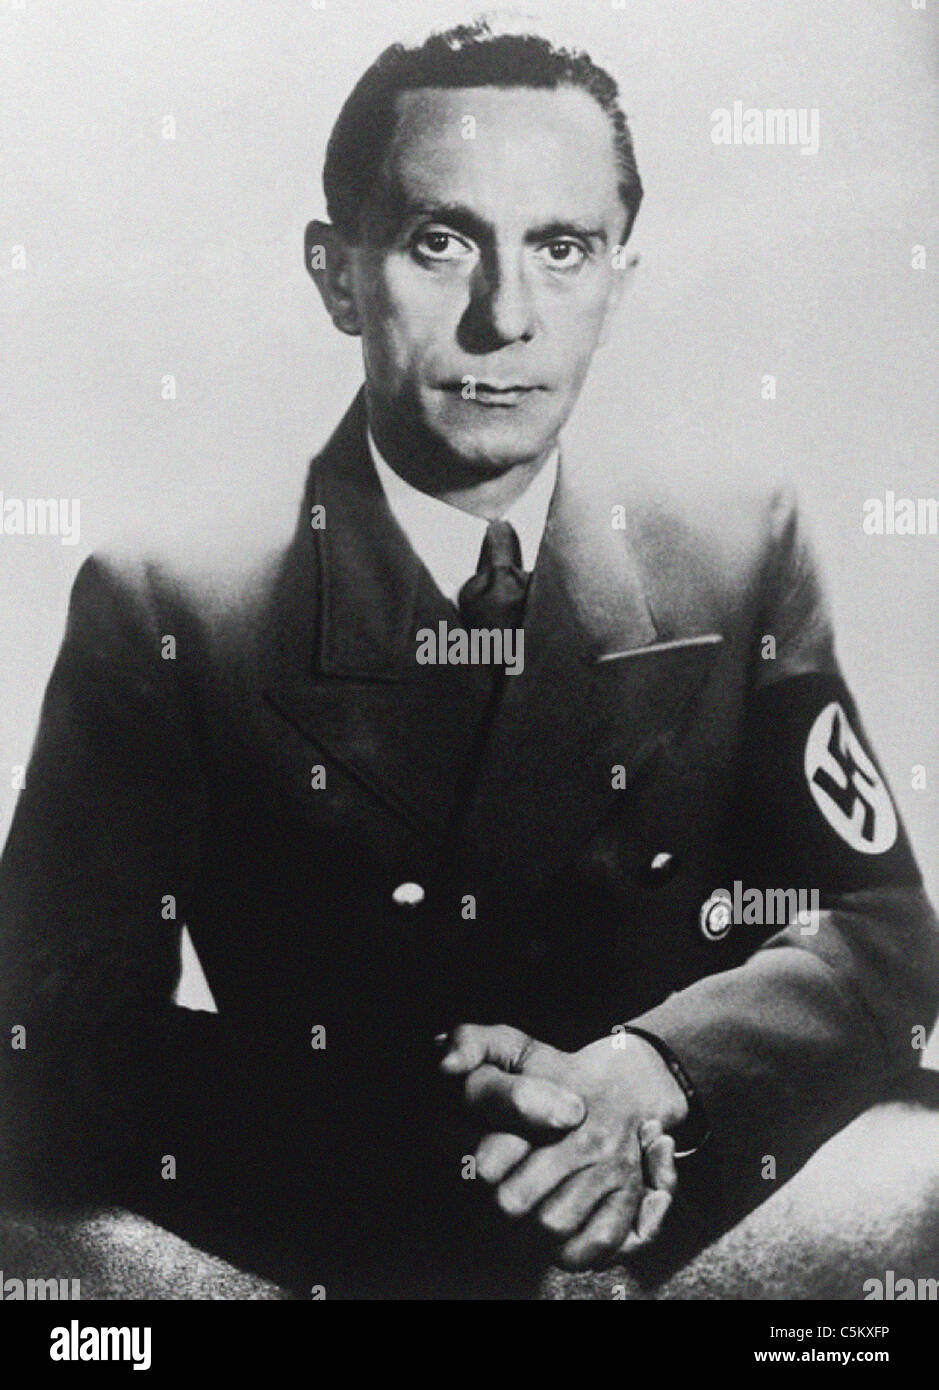 Joseph Goebbels German wartime Minister of Propaganda from the archives of Press Portrait Service - Stock Image